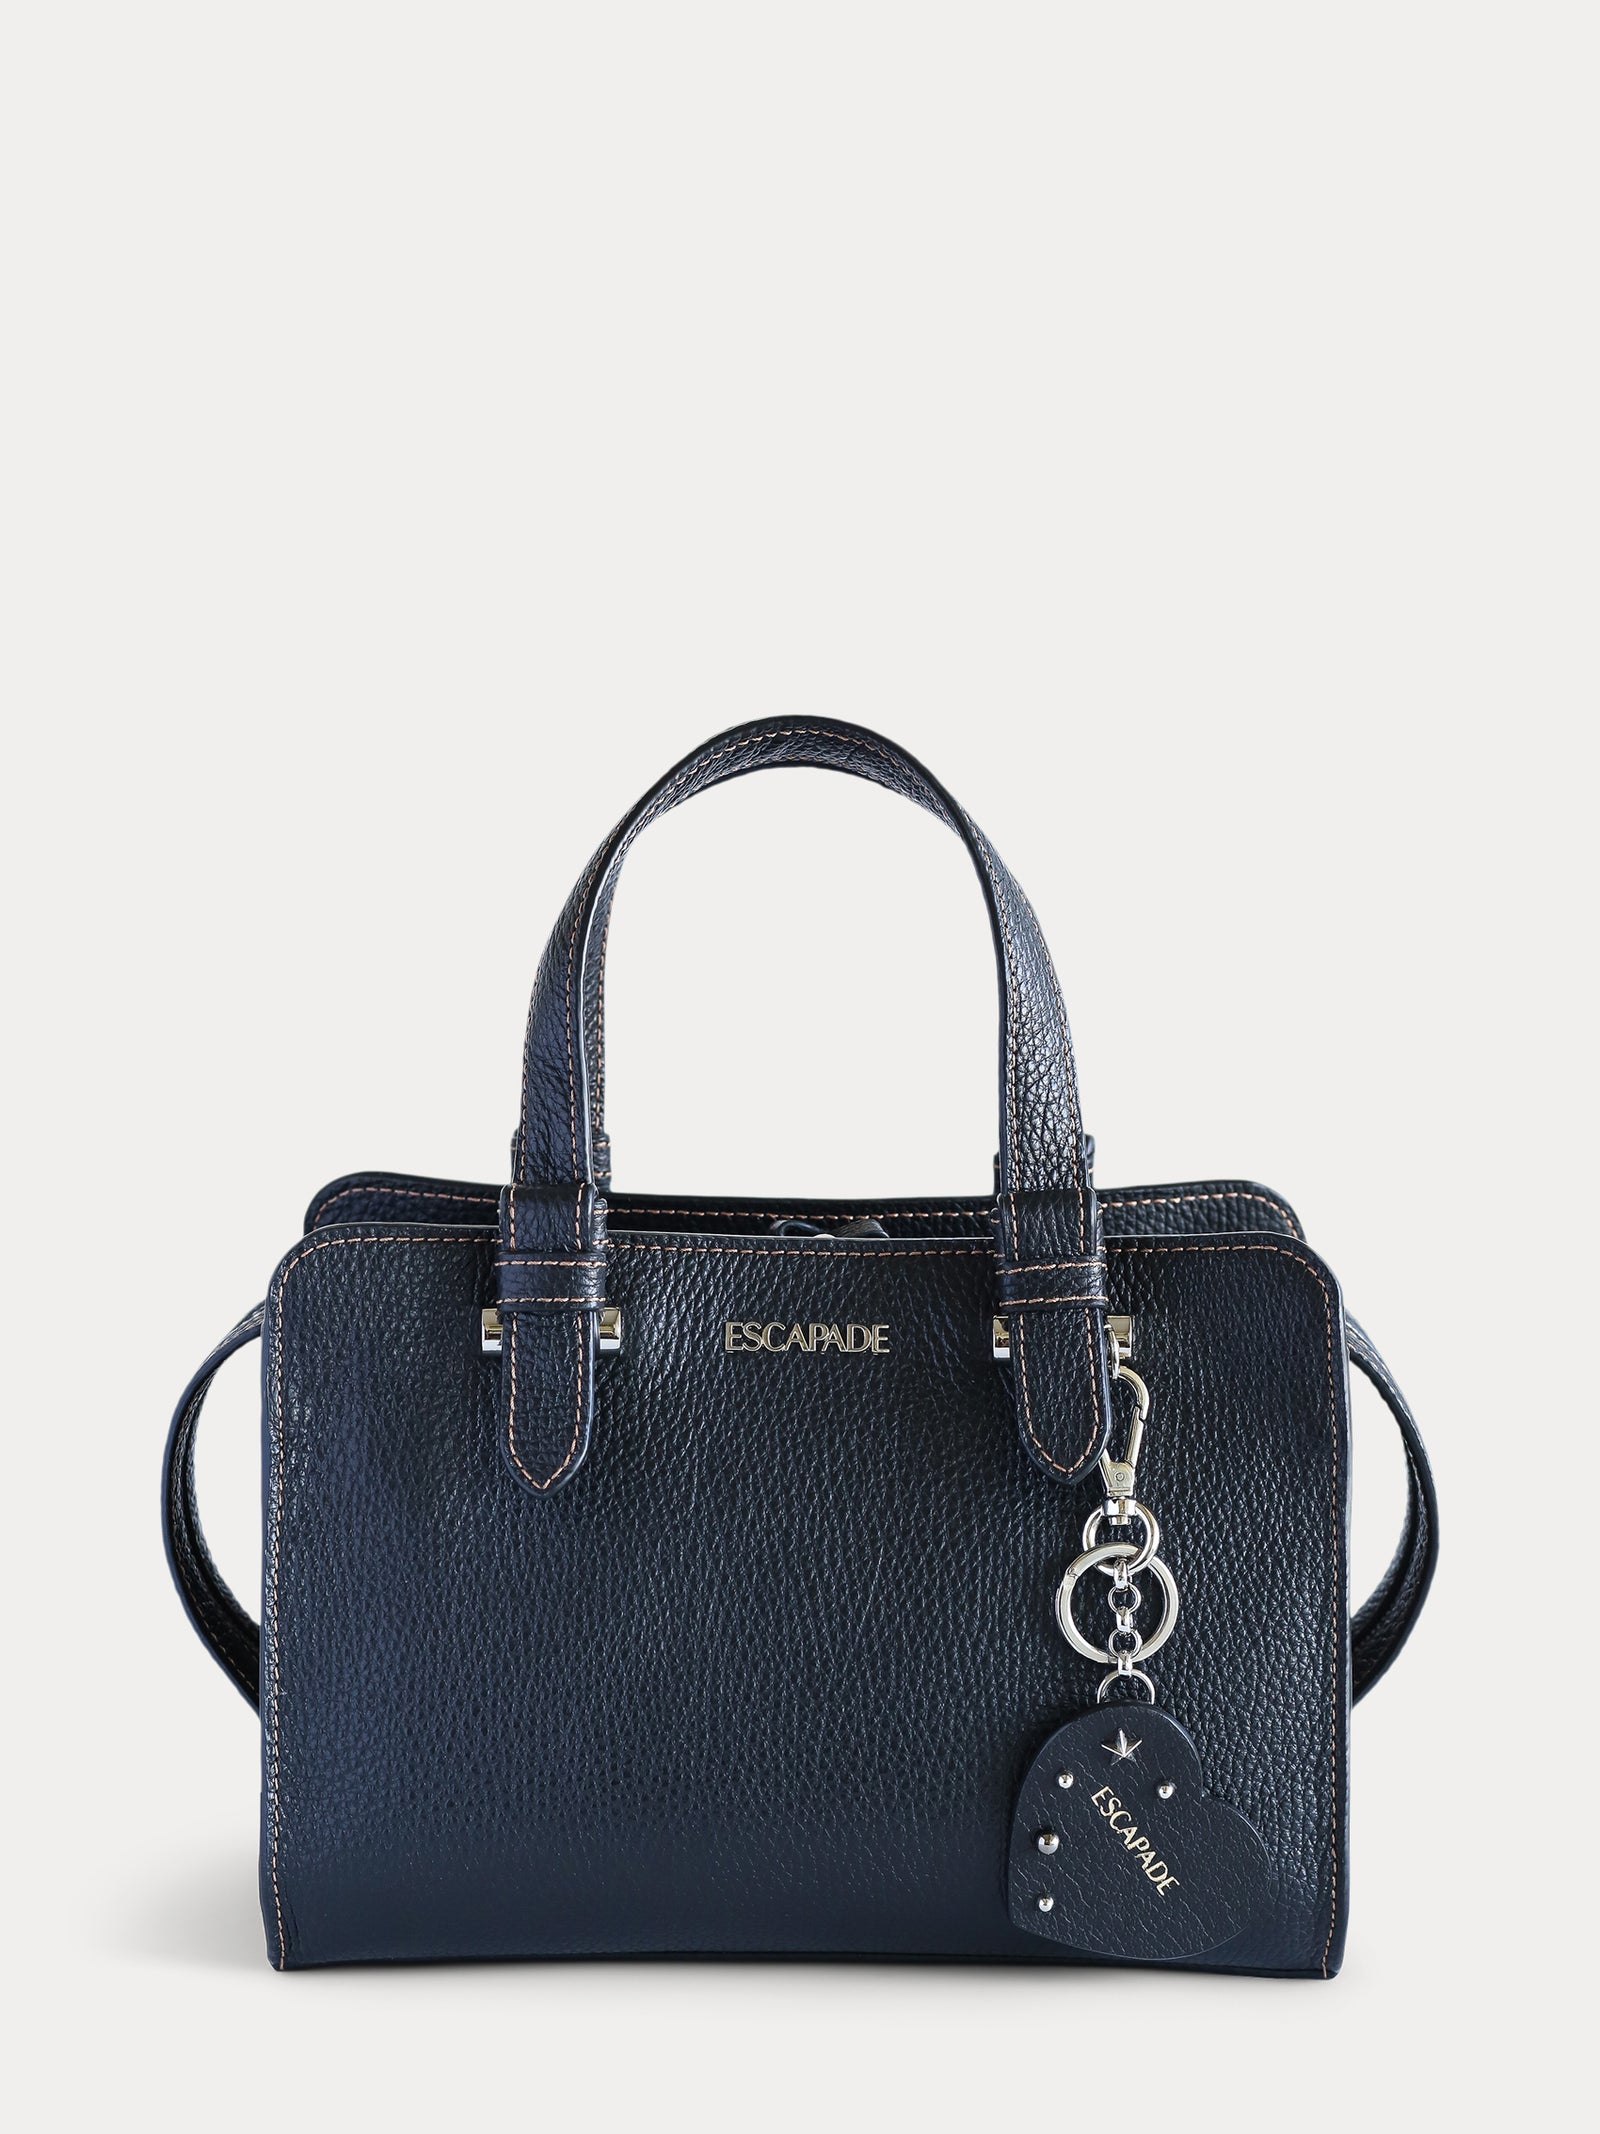 Soho Chic. Black Satchel Bag.